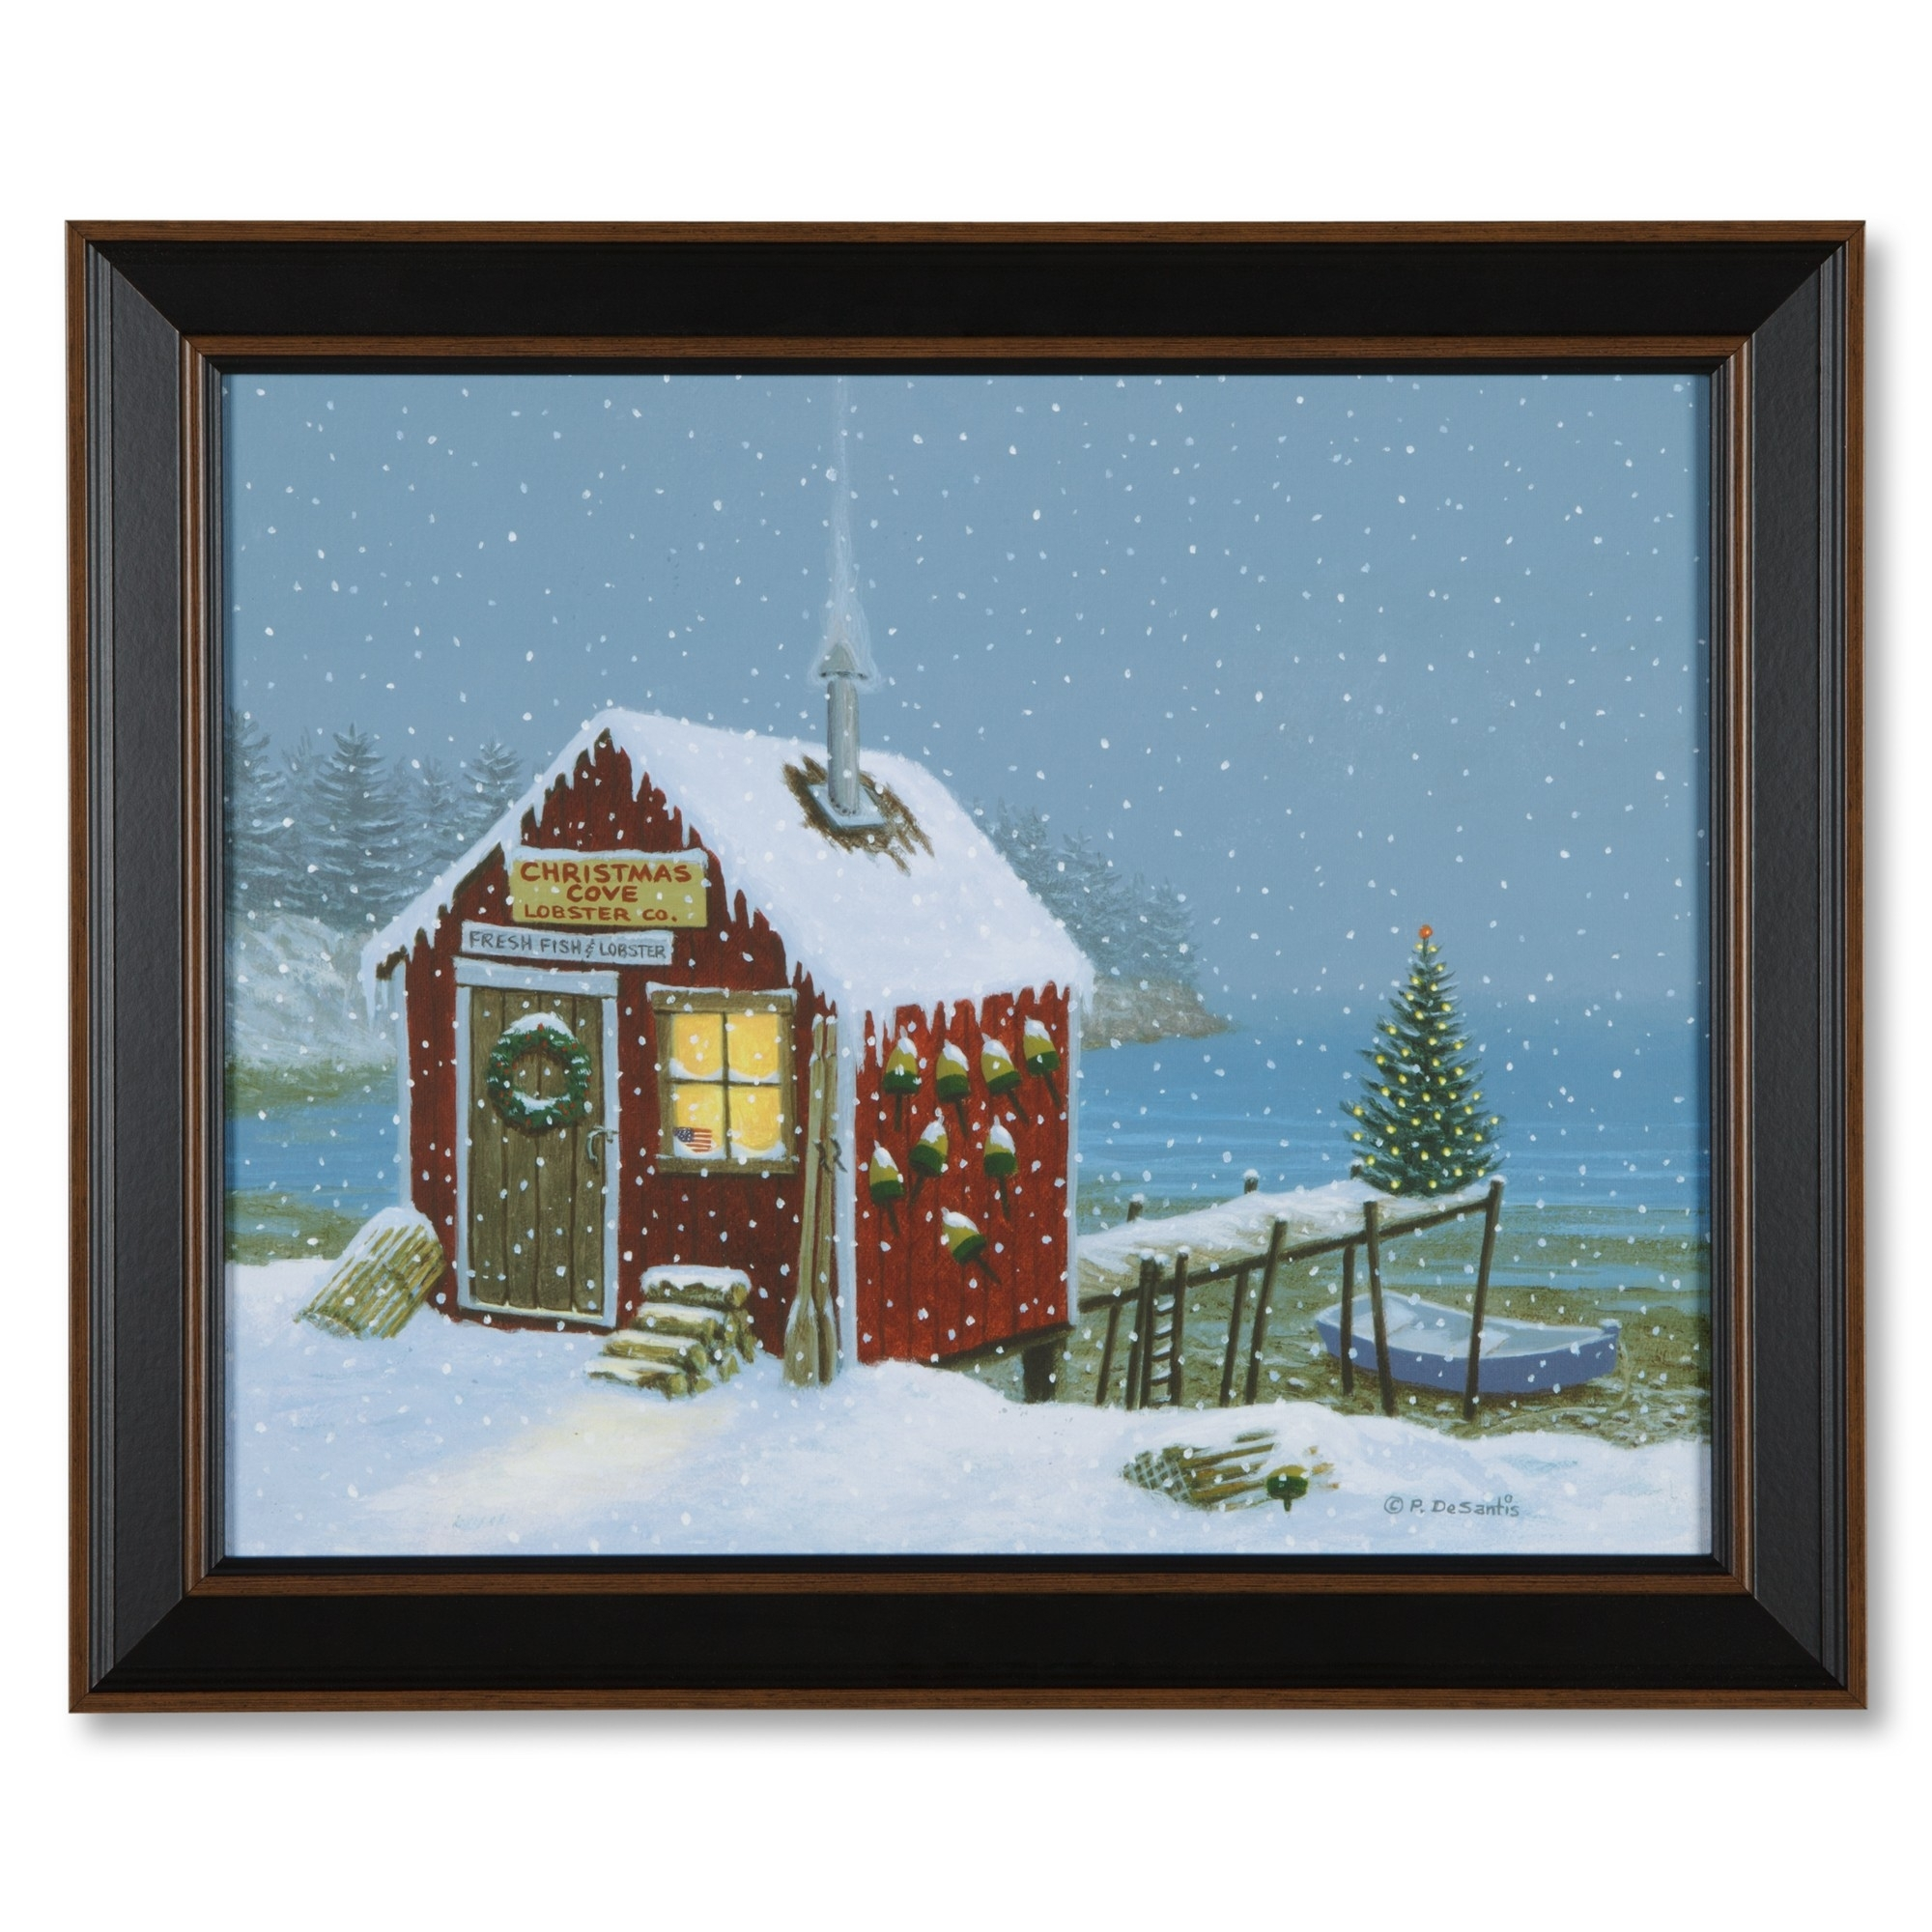 Christmas Cove Lobster Shack Print | Sturbridge Yankee Workshop Regarding Most Current Christmas Framed Art Prints (View 4 of 15)